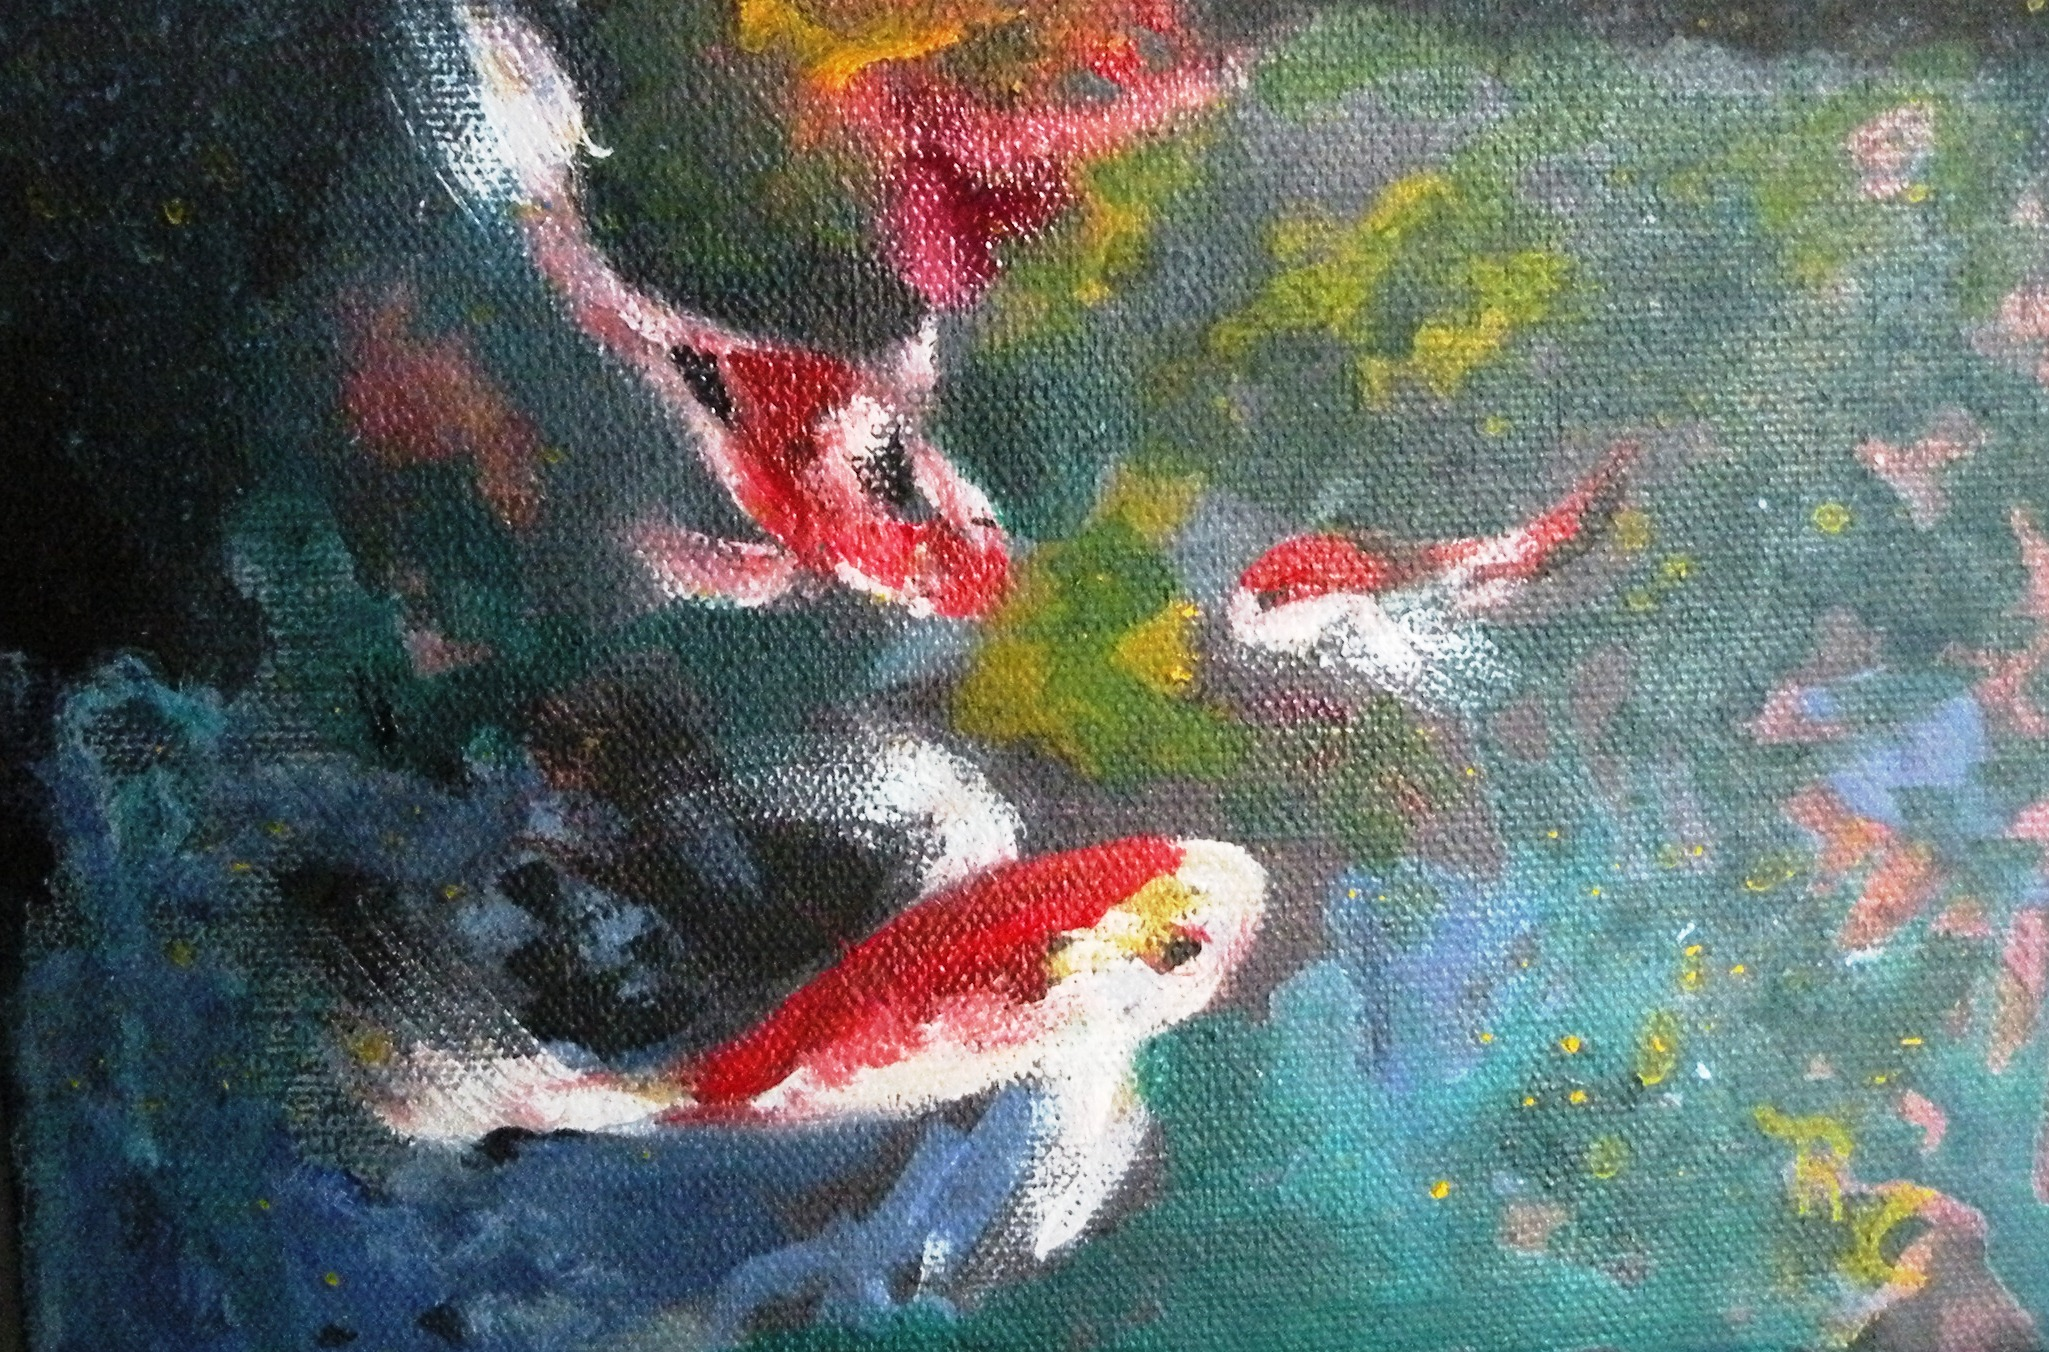 Underwater Fish 3 (Oil) n $45